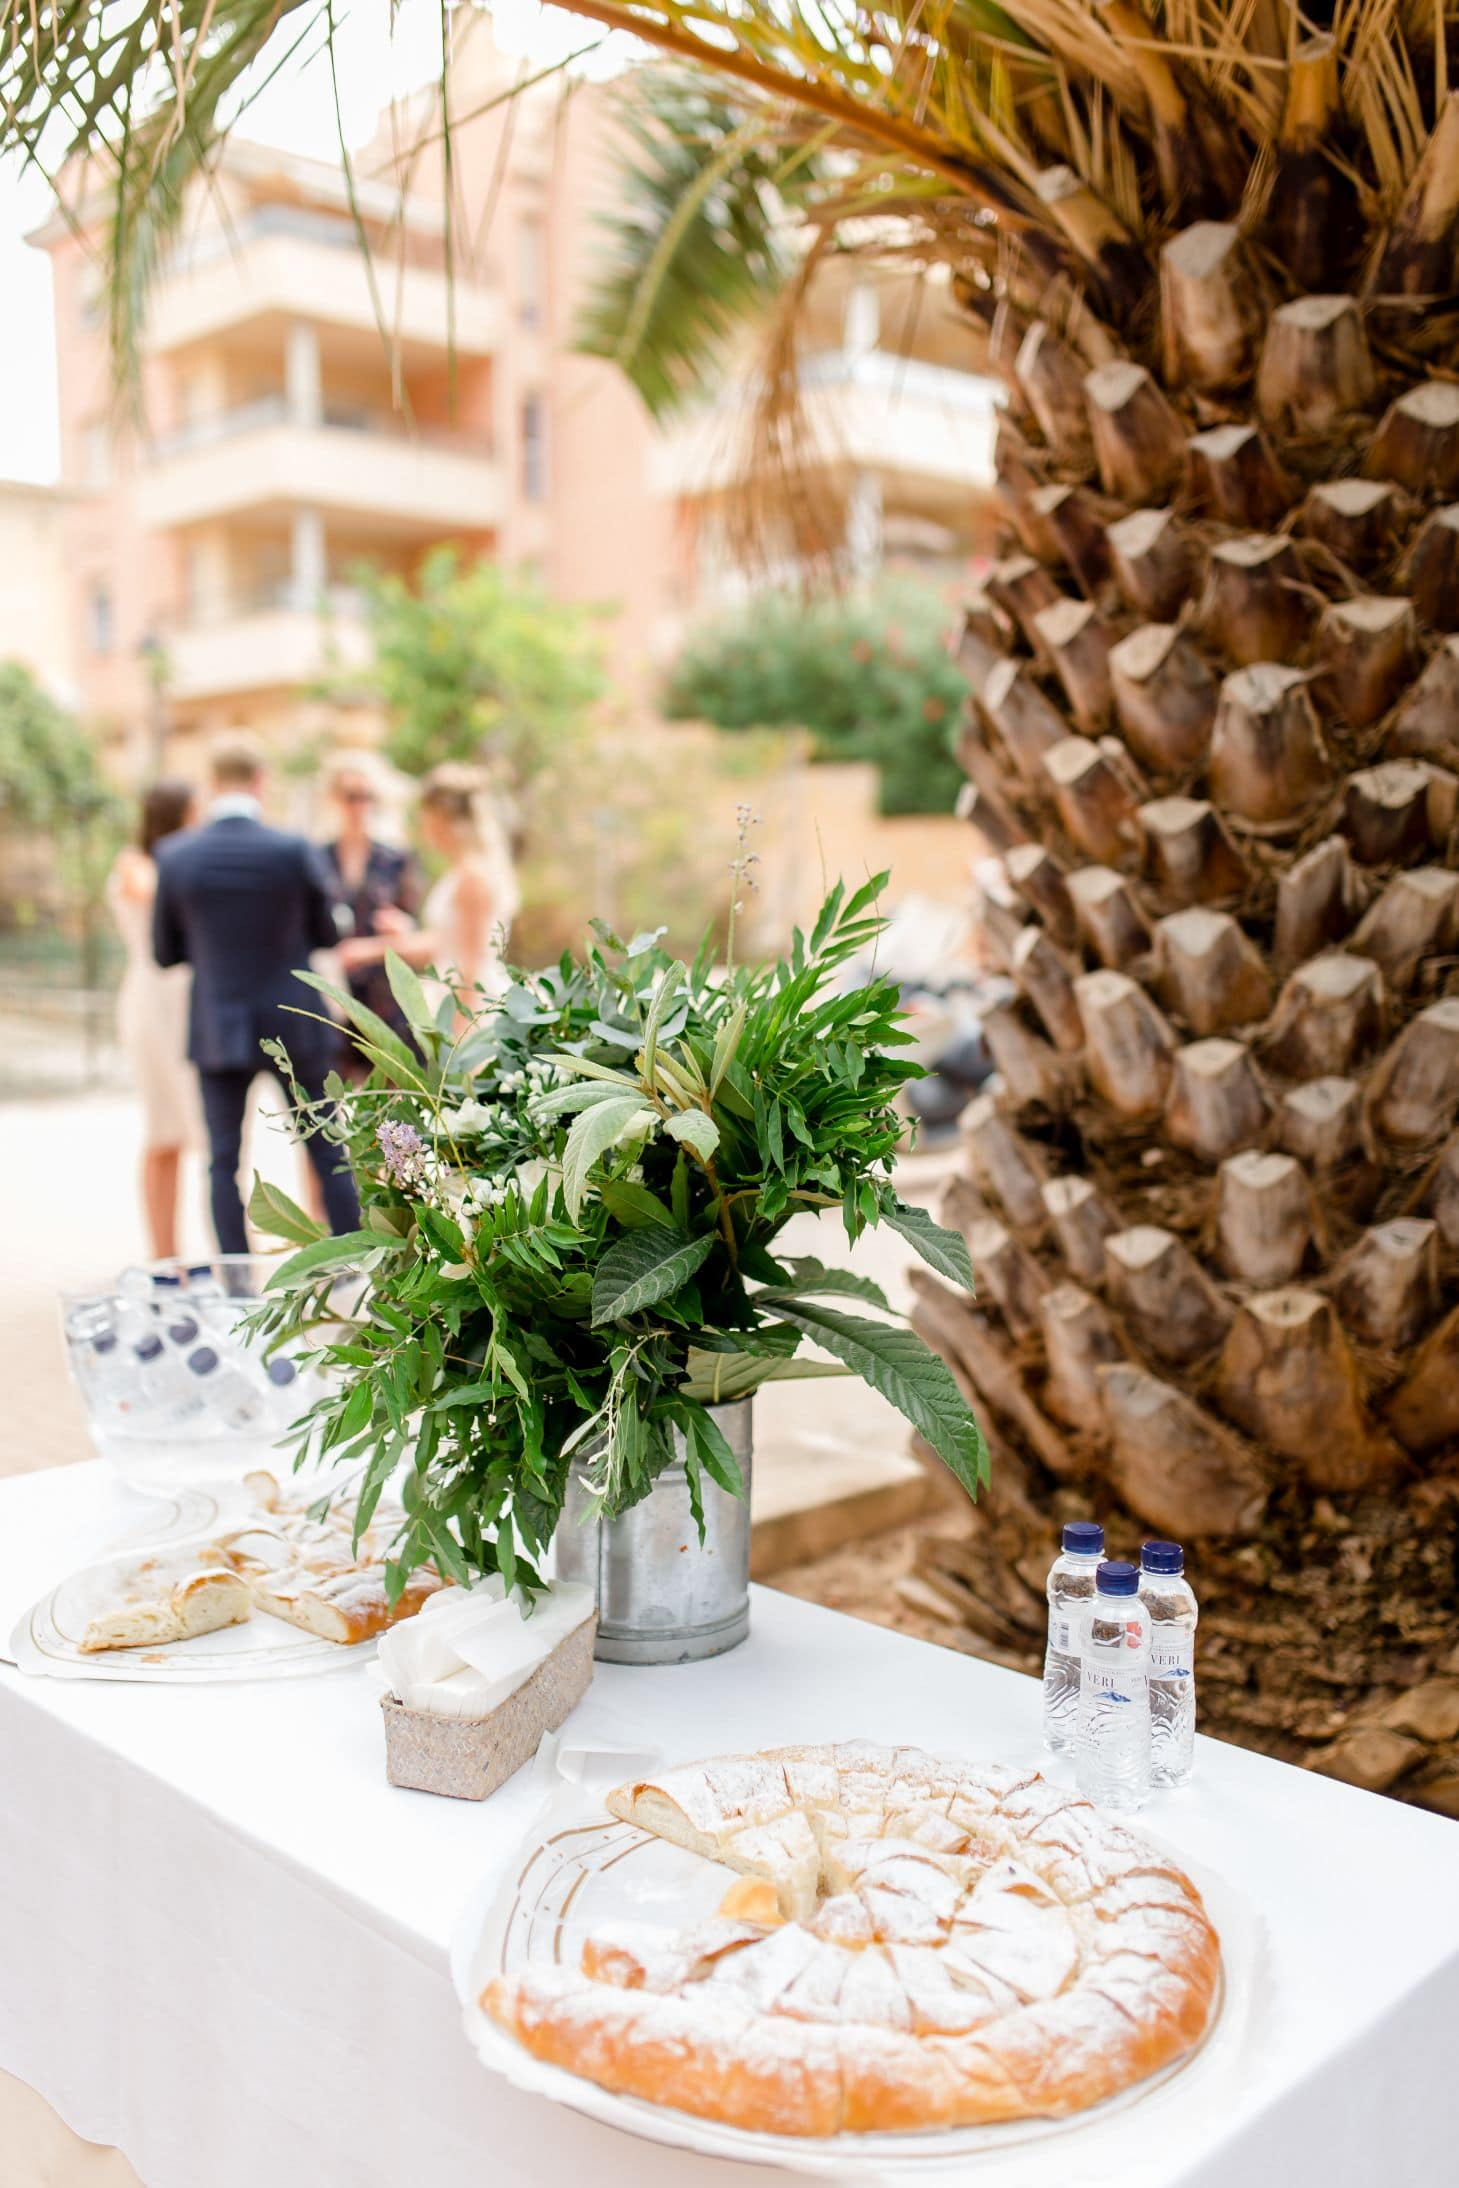 Million Memories_S&J_Hochzeitsfotograf_Mallorca_Spain_Wedding_Spanien Hochzeit_Balearen_Balearic islands_051